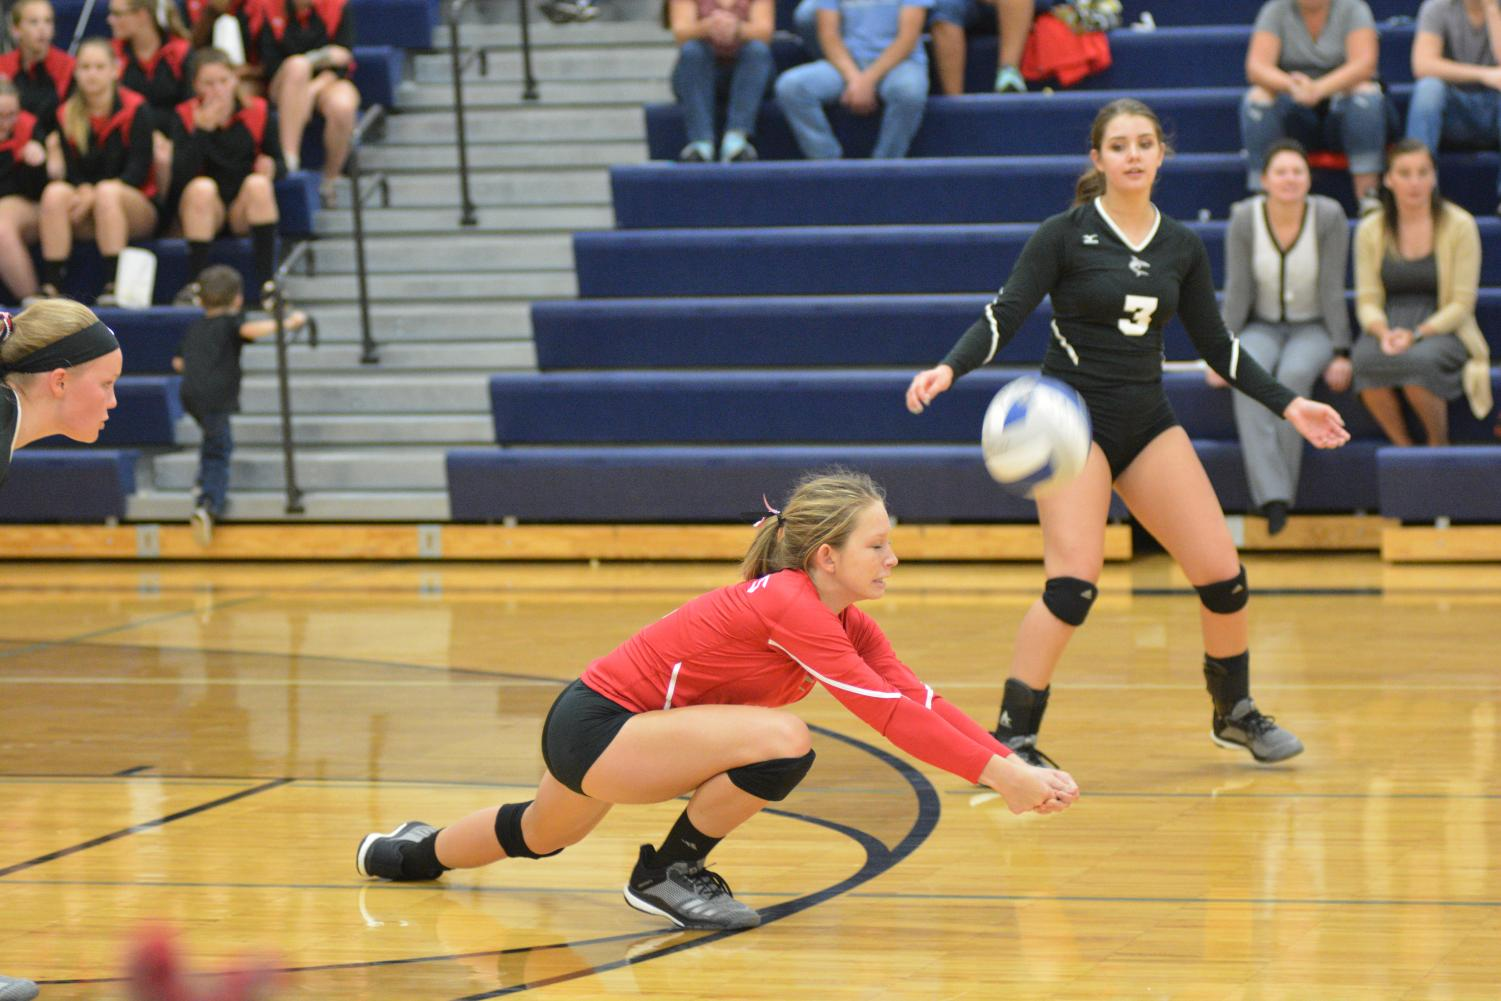 Madeline Greenup digs a ball against Nouvel.